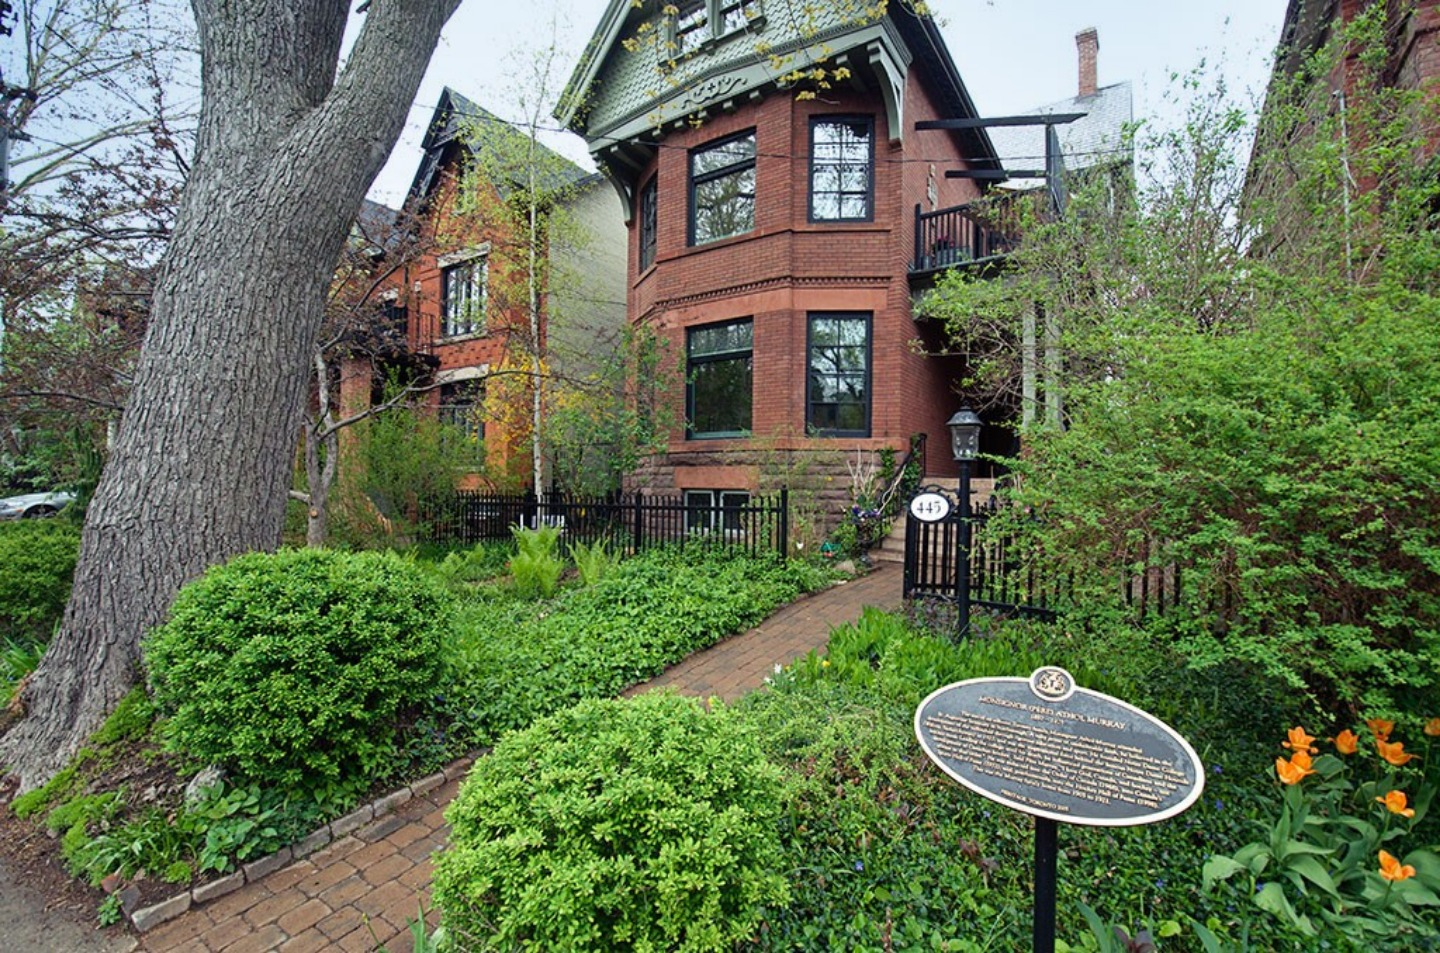 A large brick building with grass and trees at Annex Garden Bed & Breakfast and Suites.